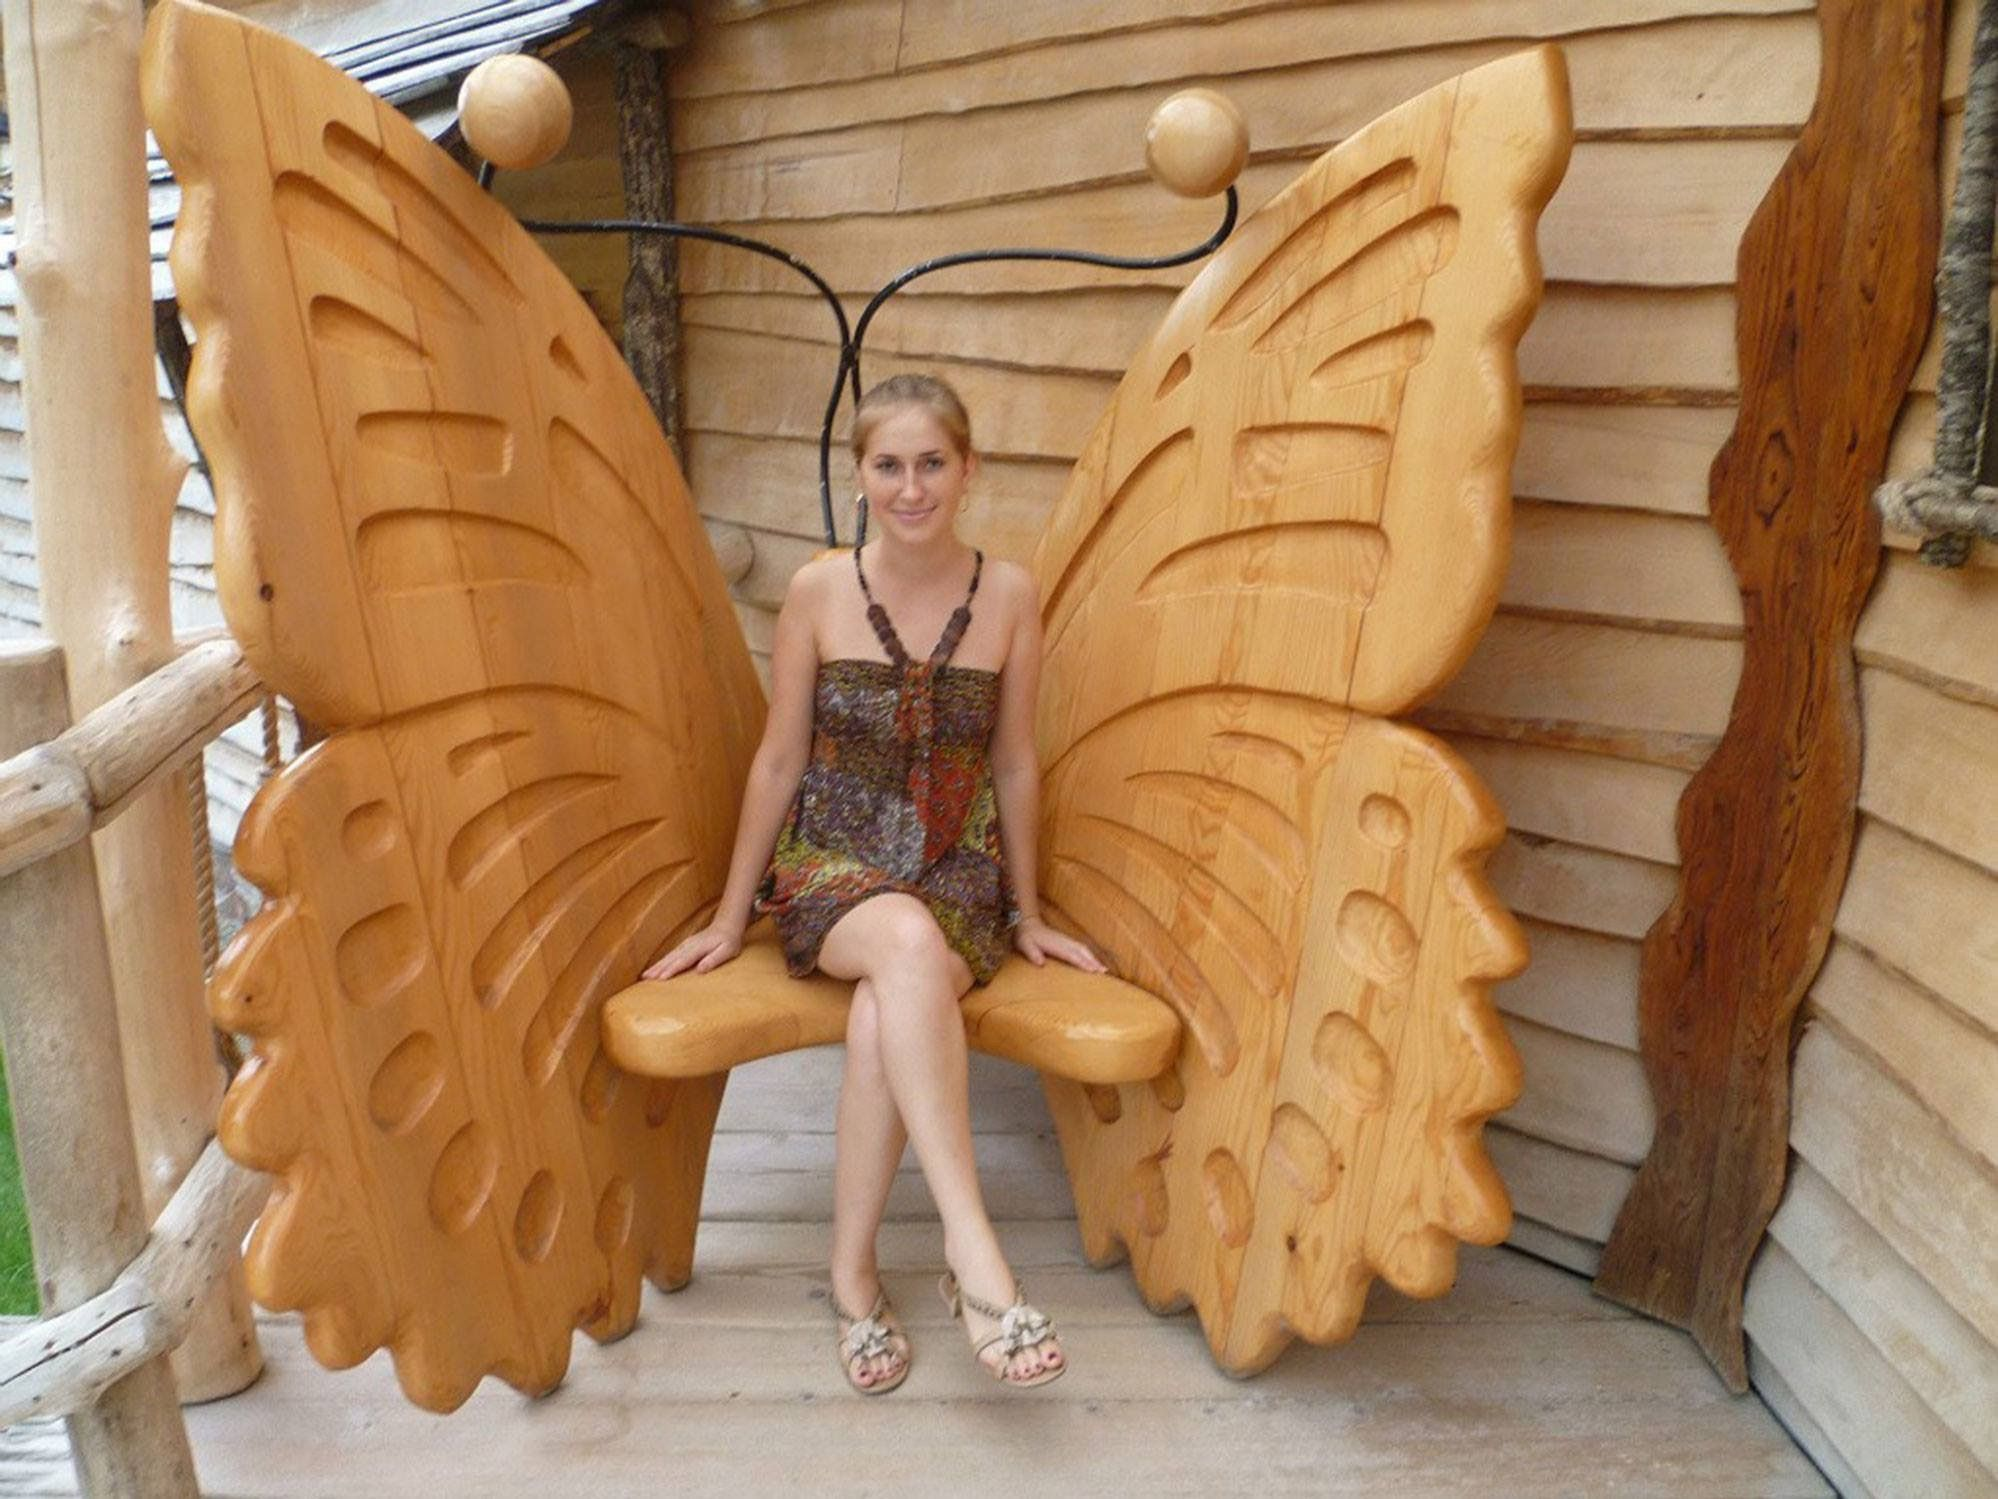 Carved wooden butterfly chair | DIY Home Projects ...